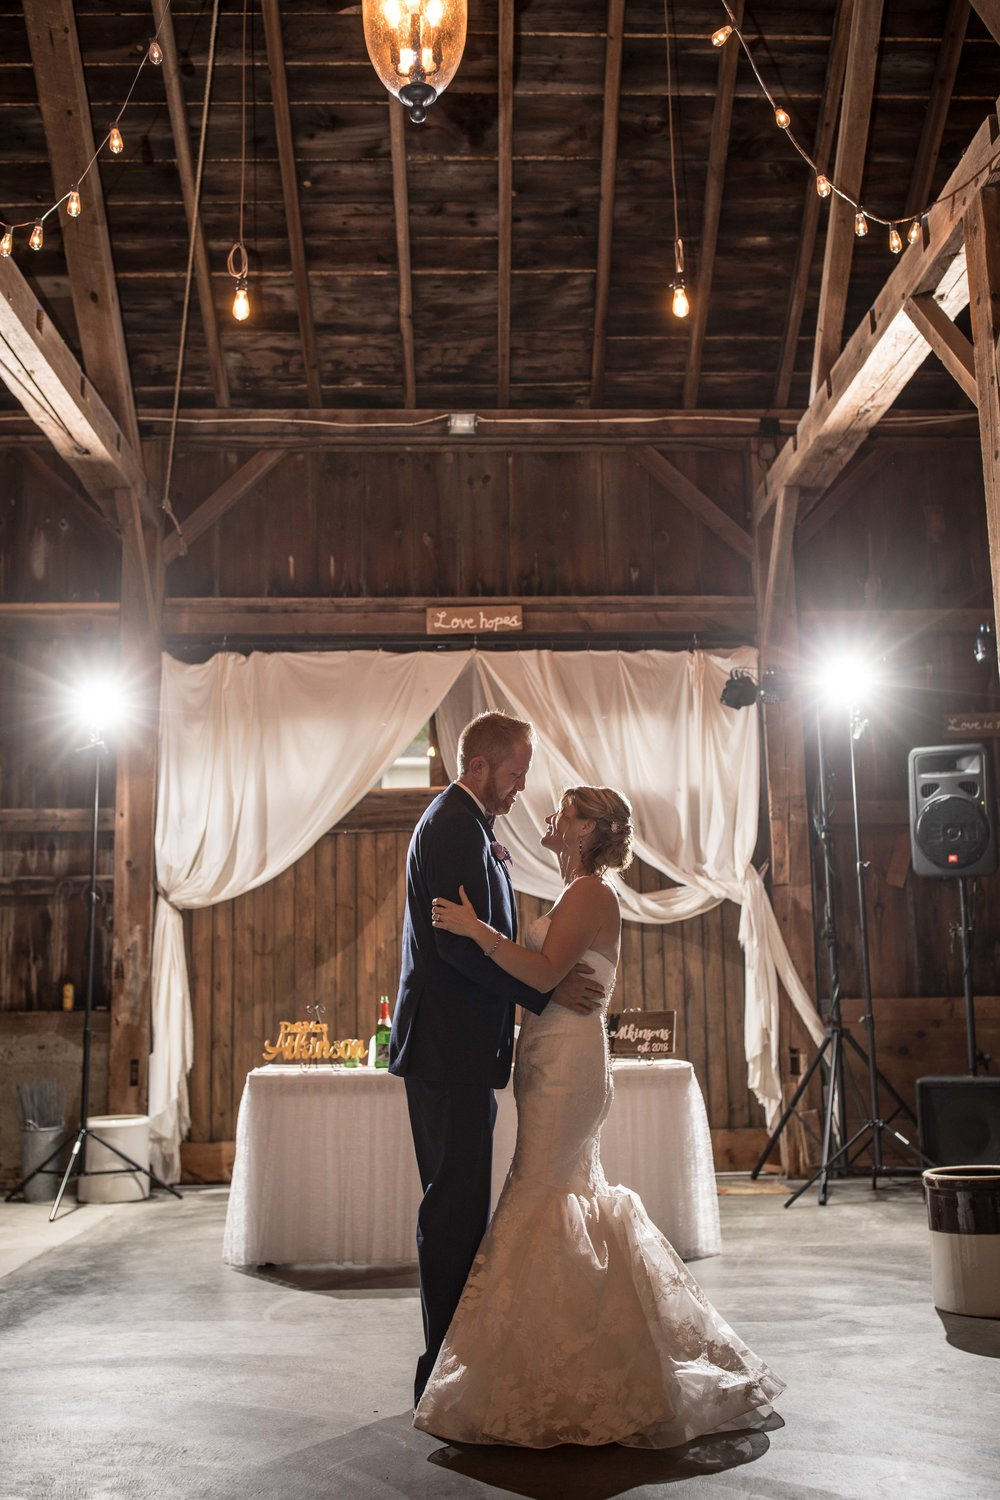 First dance as husband and wife with off camera flashes in the background